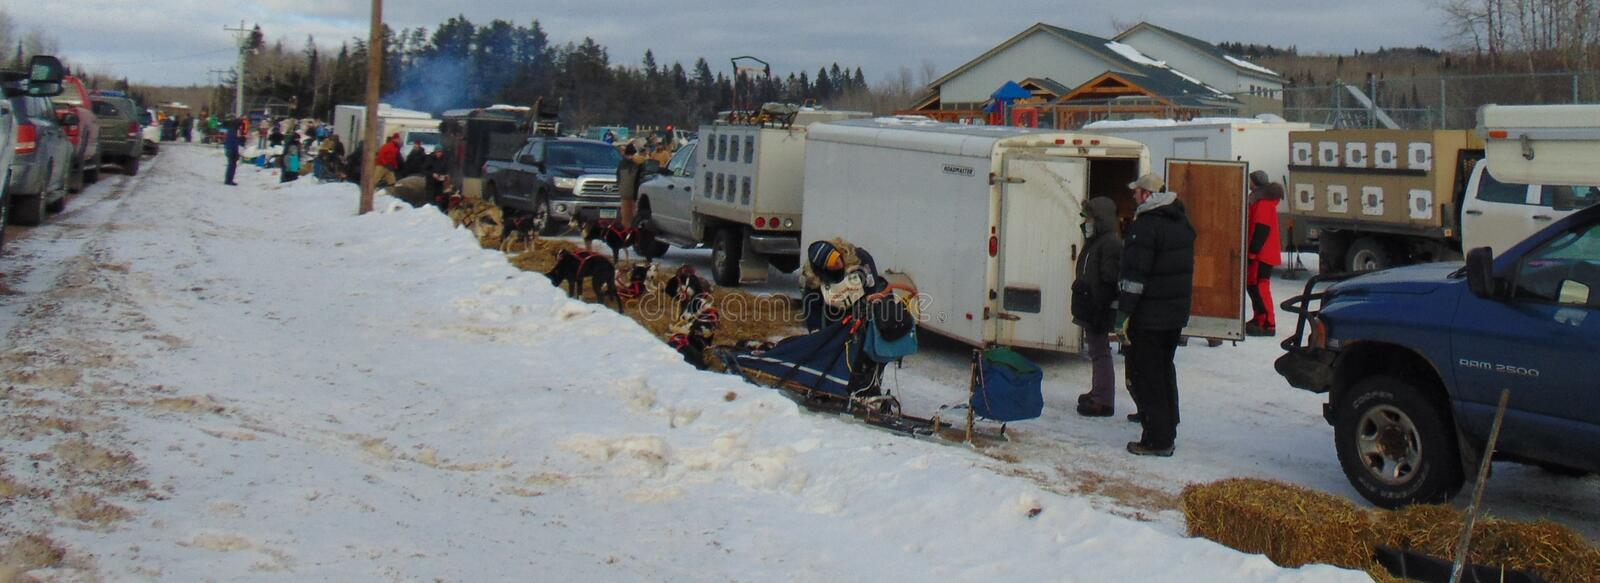 John Beargrease Sled Dog Marathon 2018 Finland Checkpoint spectators and mushers with teams stock images